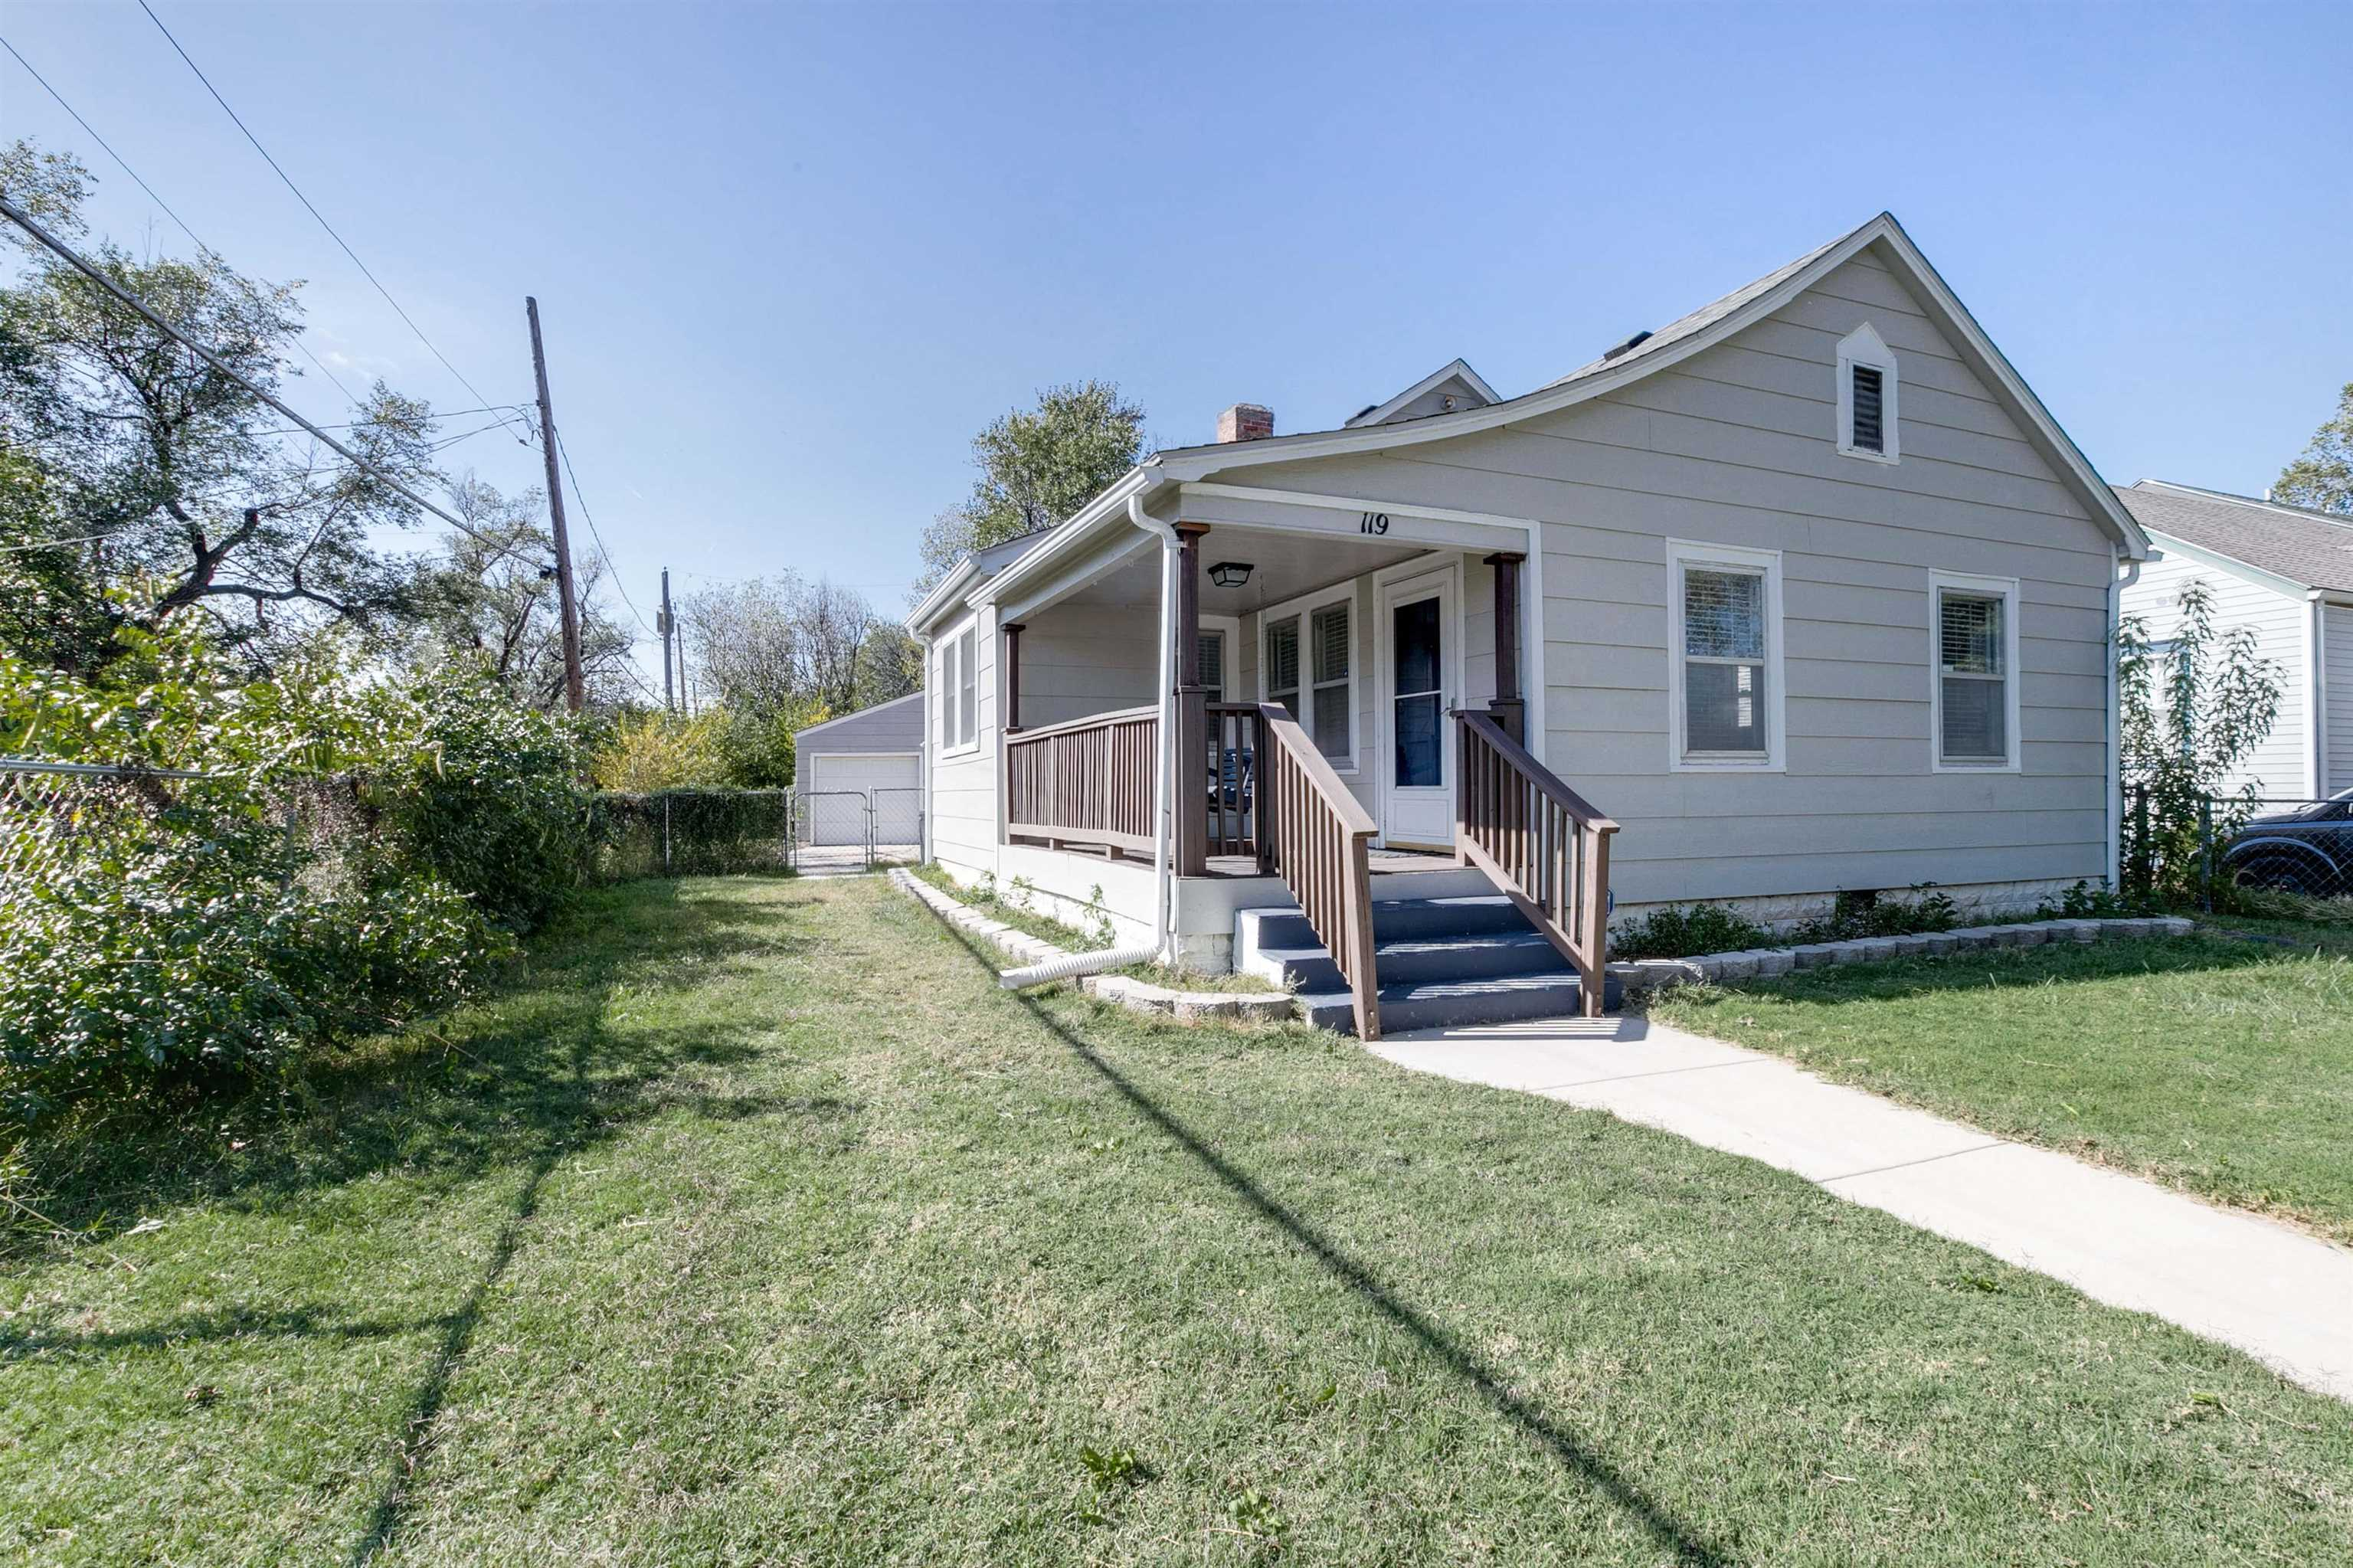 What a rare find!  This adorable bungalow has been immaculately maintained and is move in ready.  Co